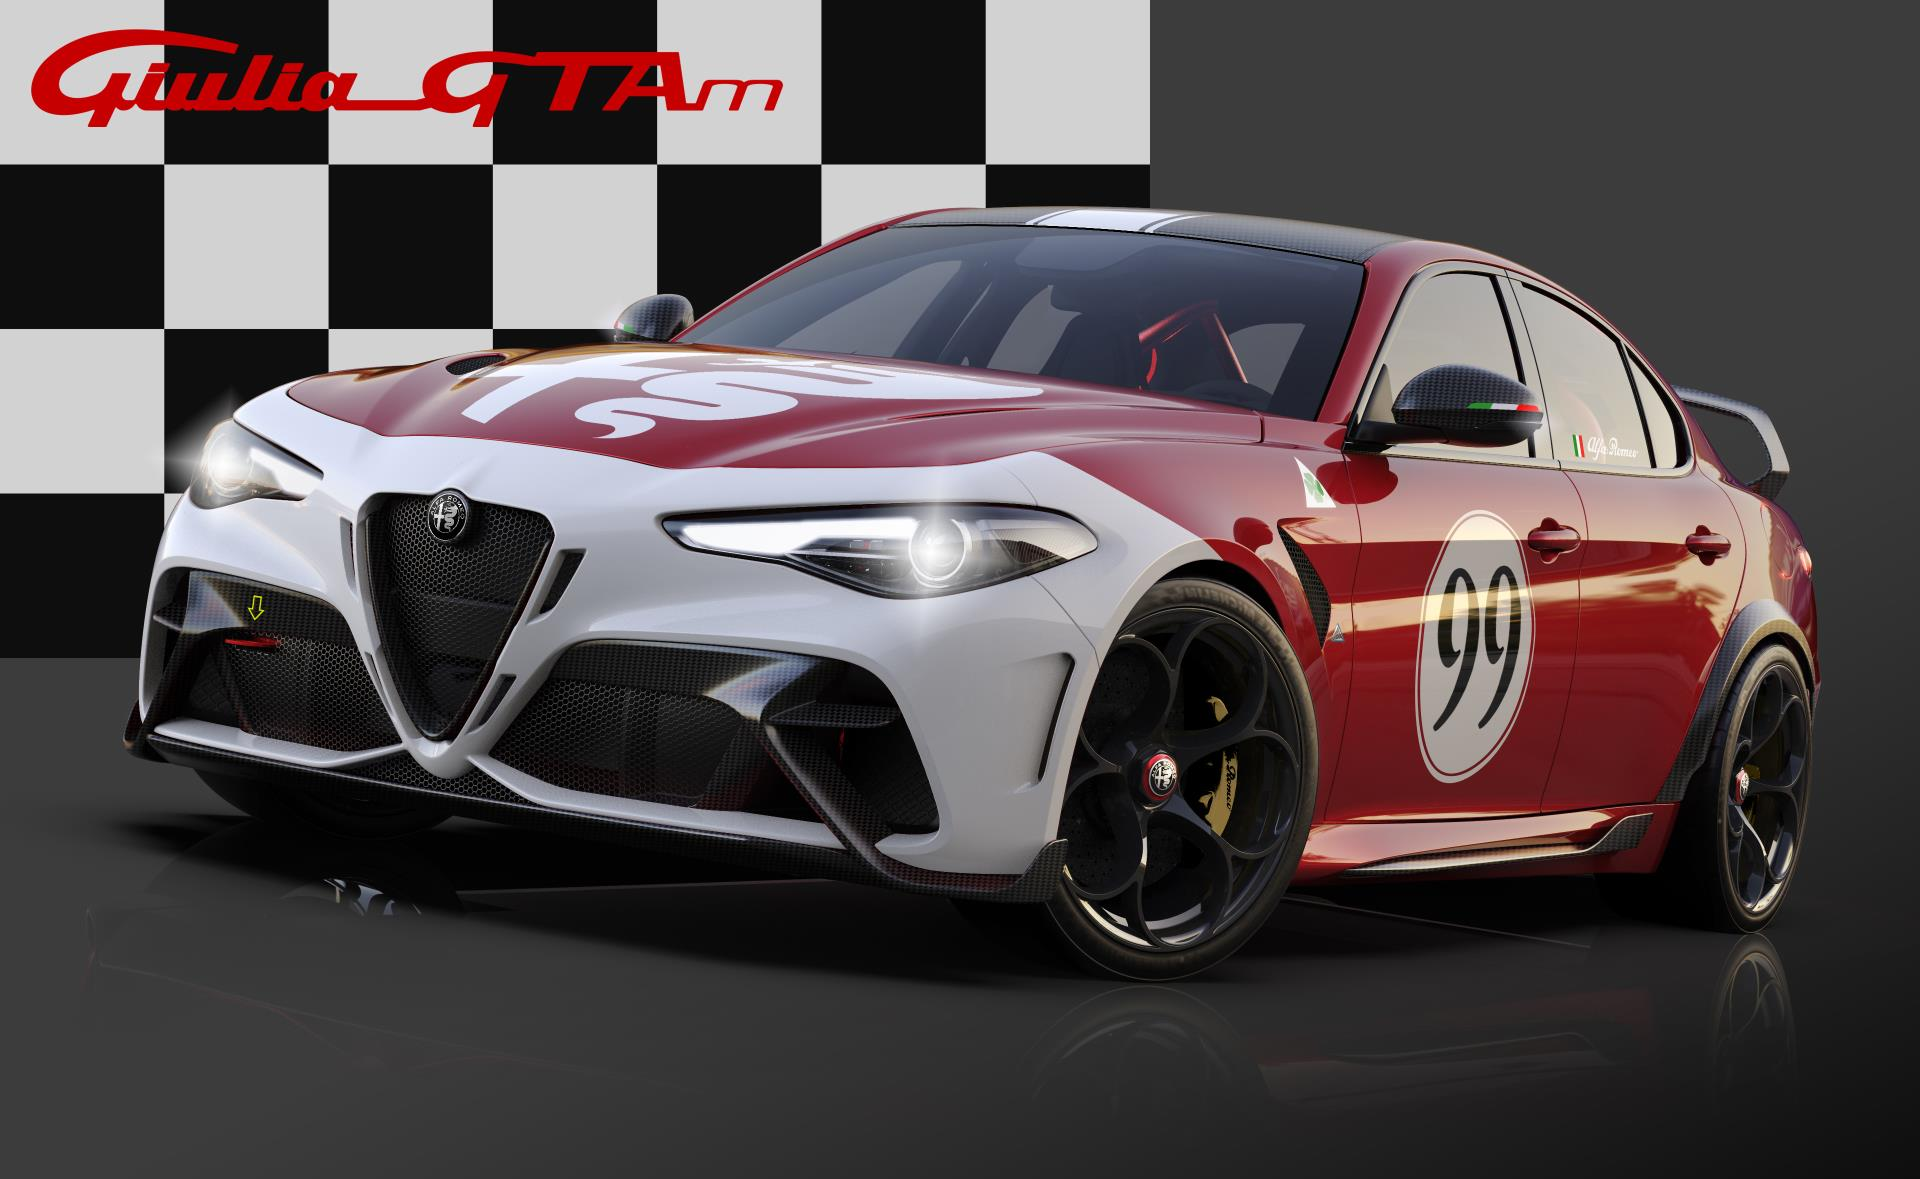 Alfa Romeo Giulia GTA dedicated Red Livery